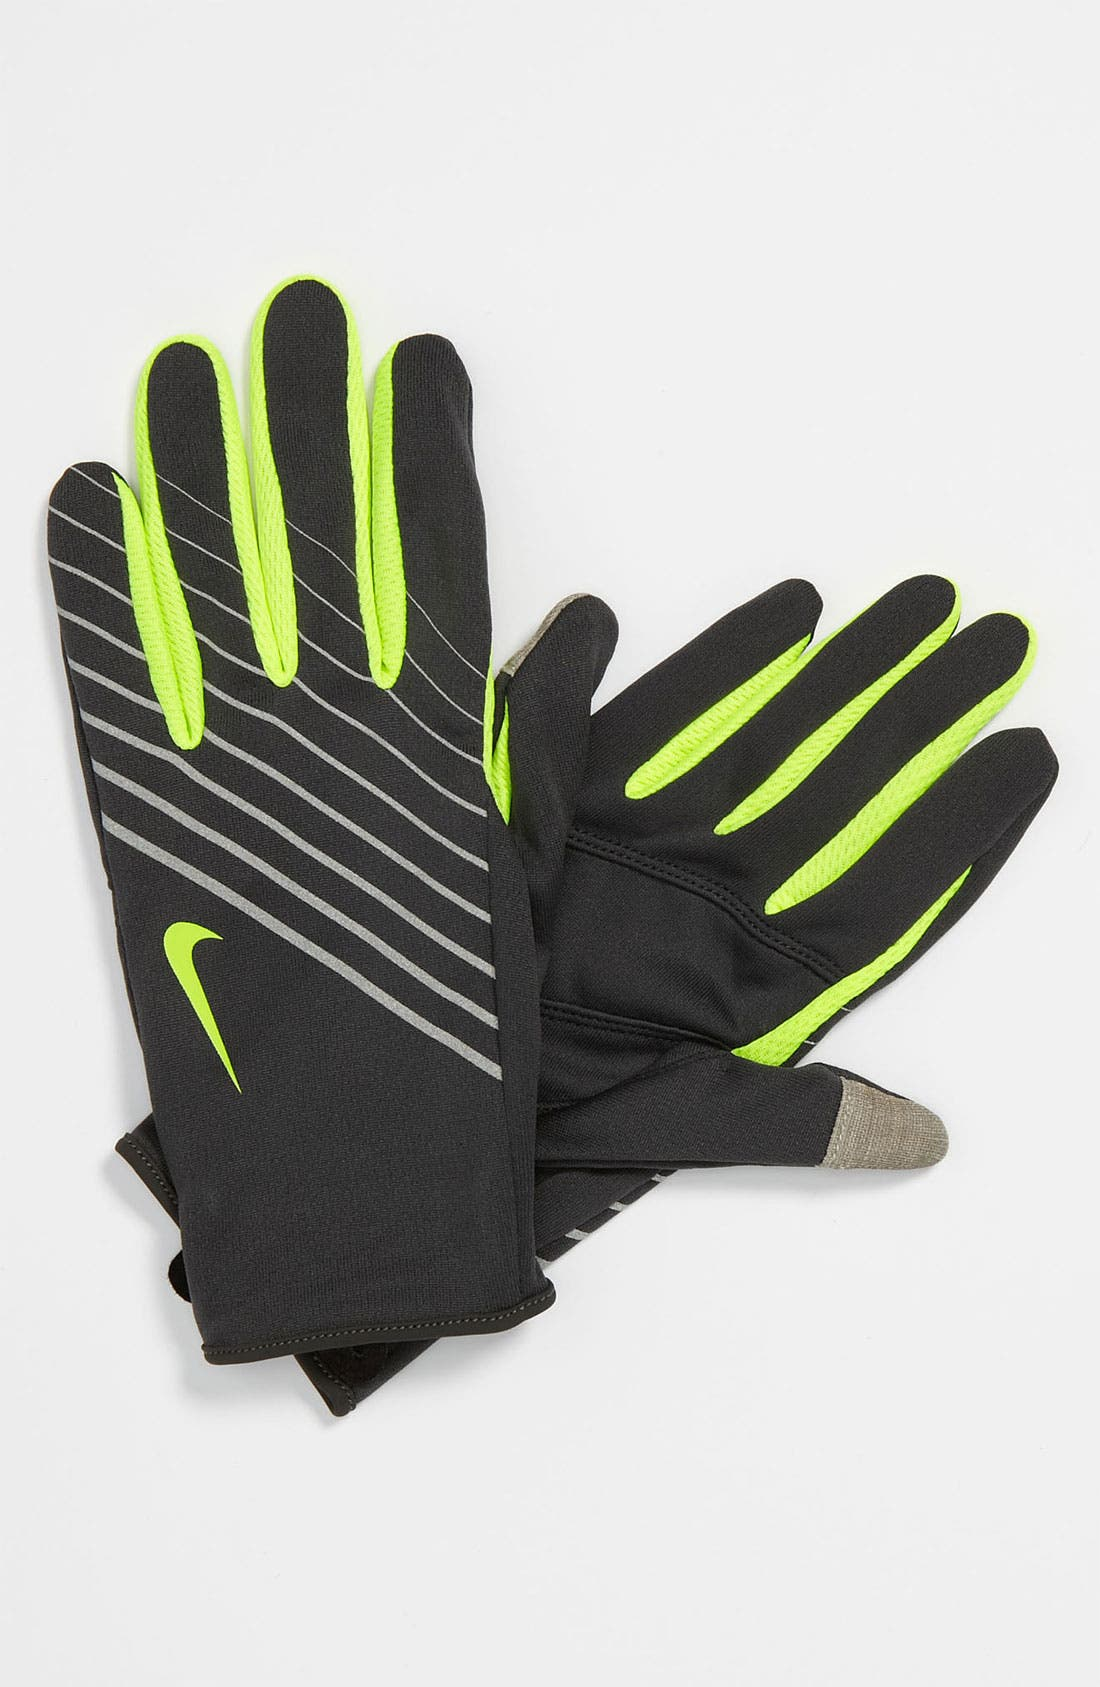 Main Image - Nike 'Tech' Lightweight Running Gloves